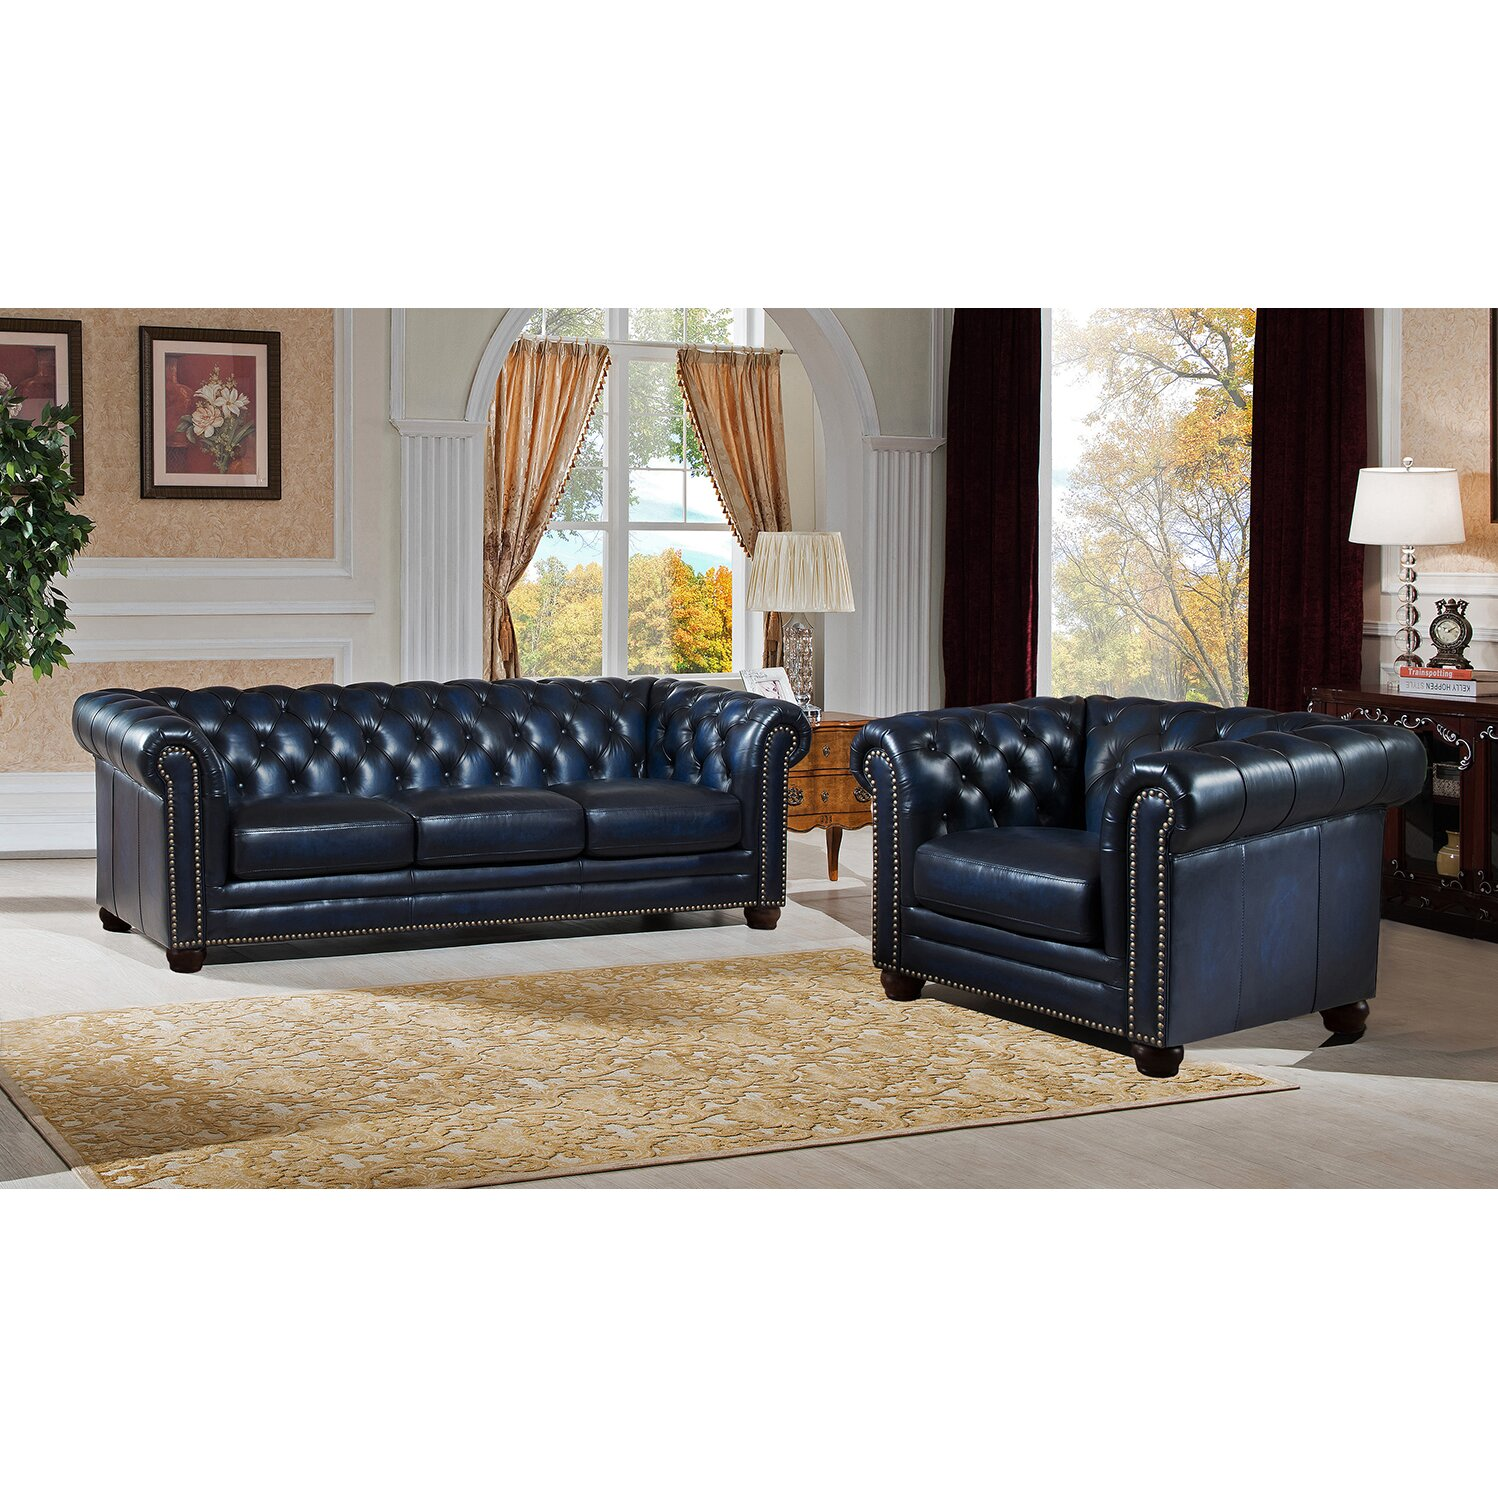 amax nebraska chesterfield genuine leather sofa and chair set wayfair. Black Bedroom Furniture Sets. Home Design Ideas